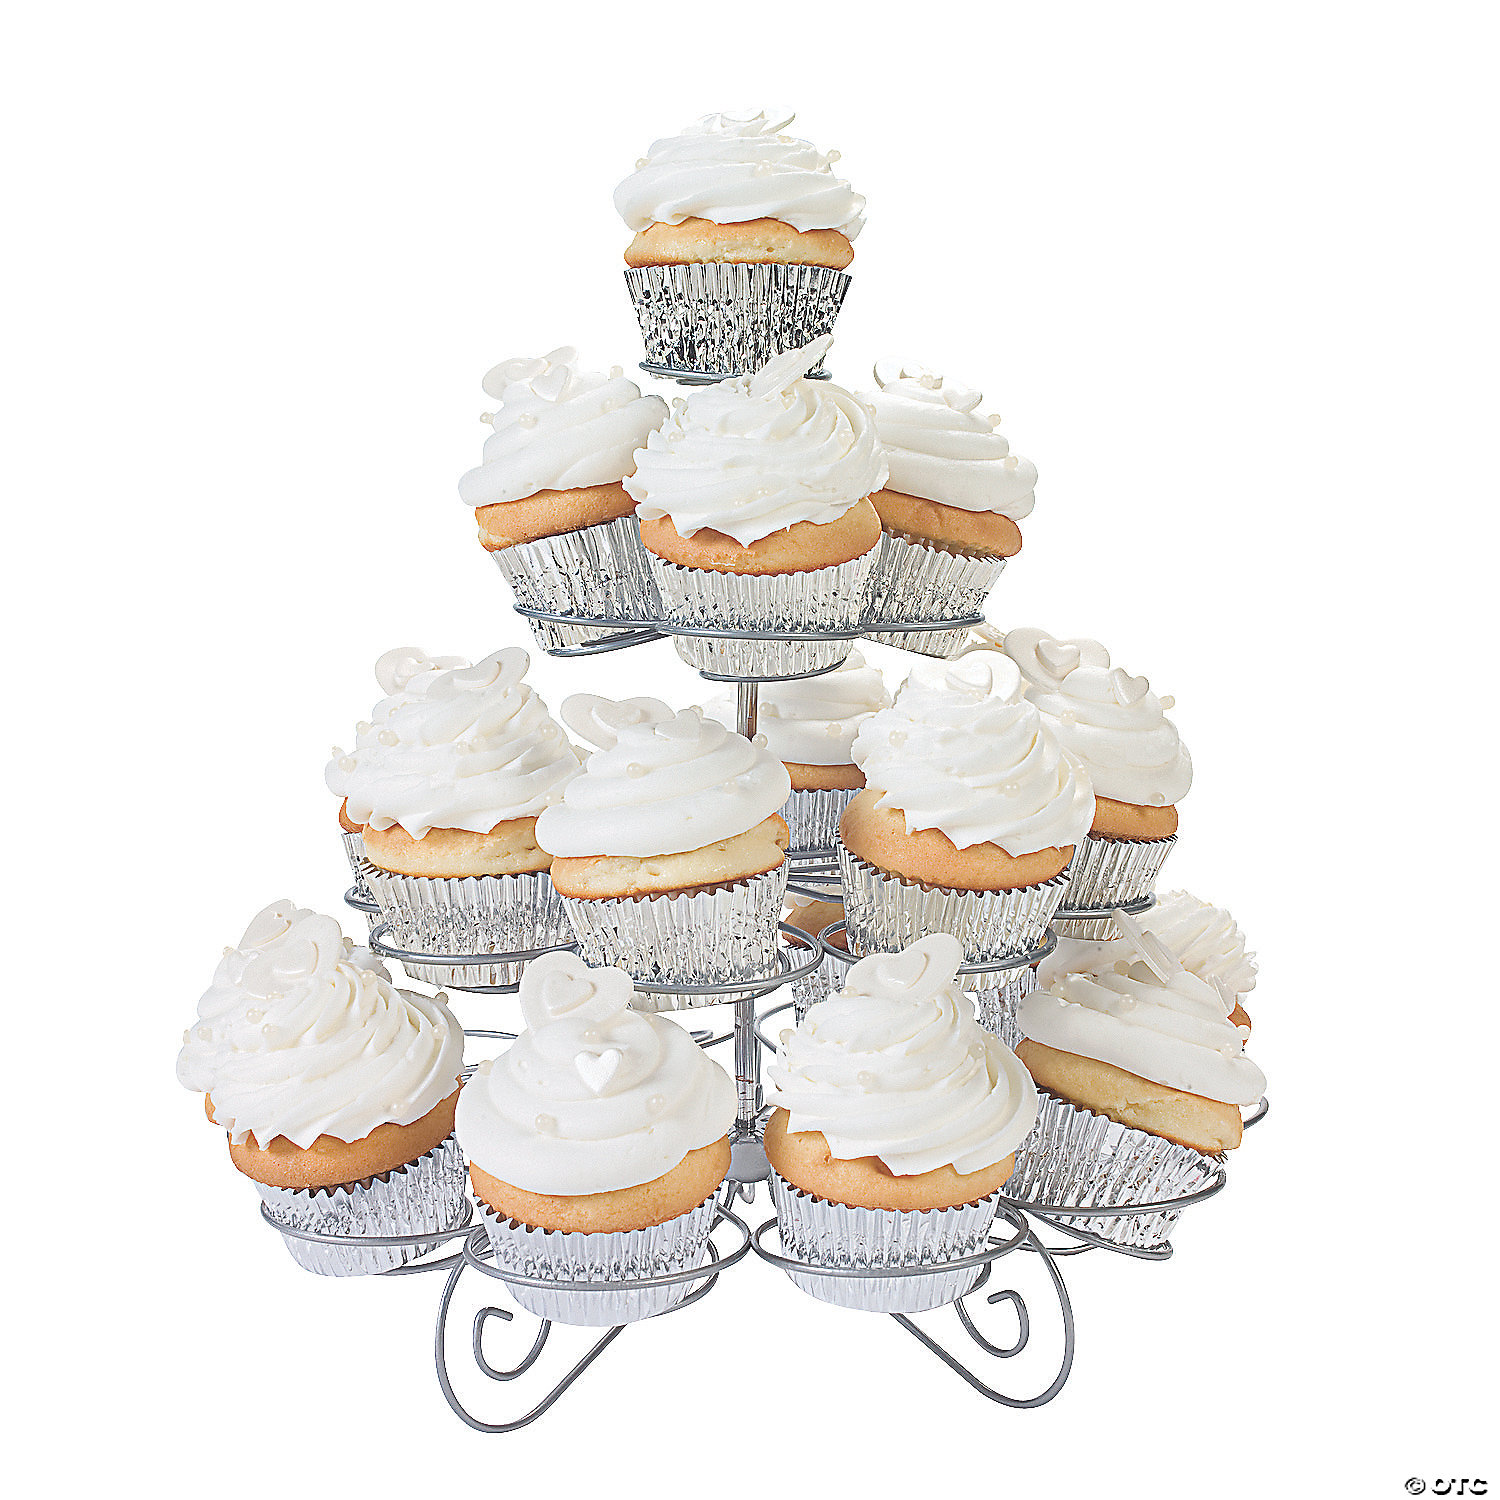 quickview  image of Metal Cupcake Stand with sku:91/6427